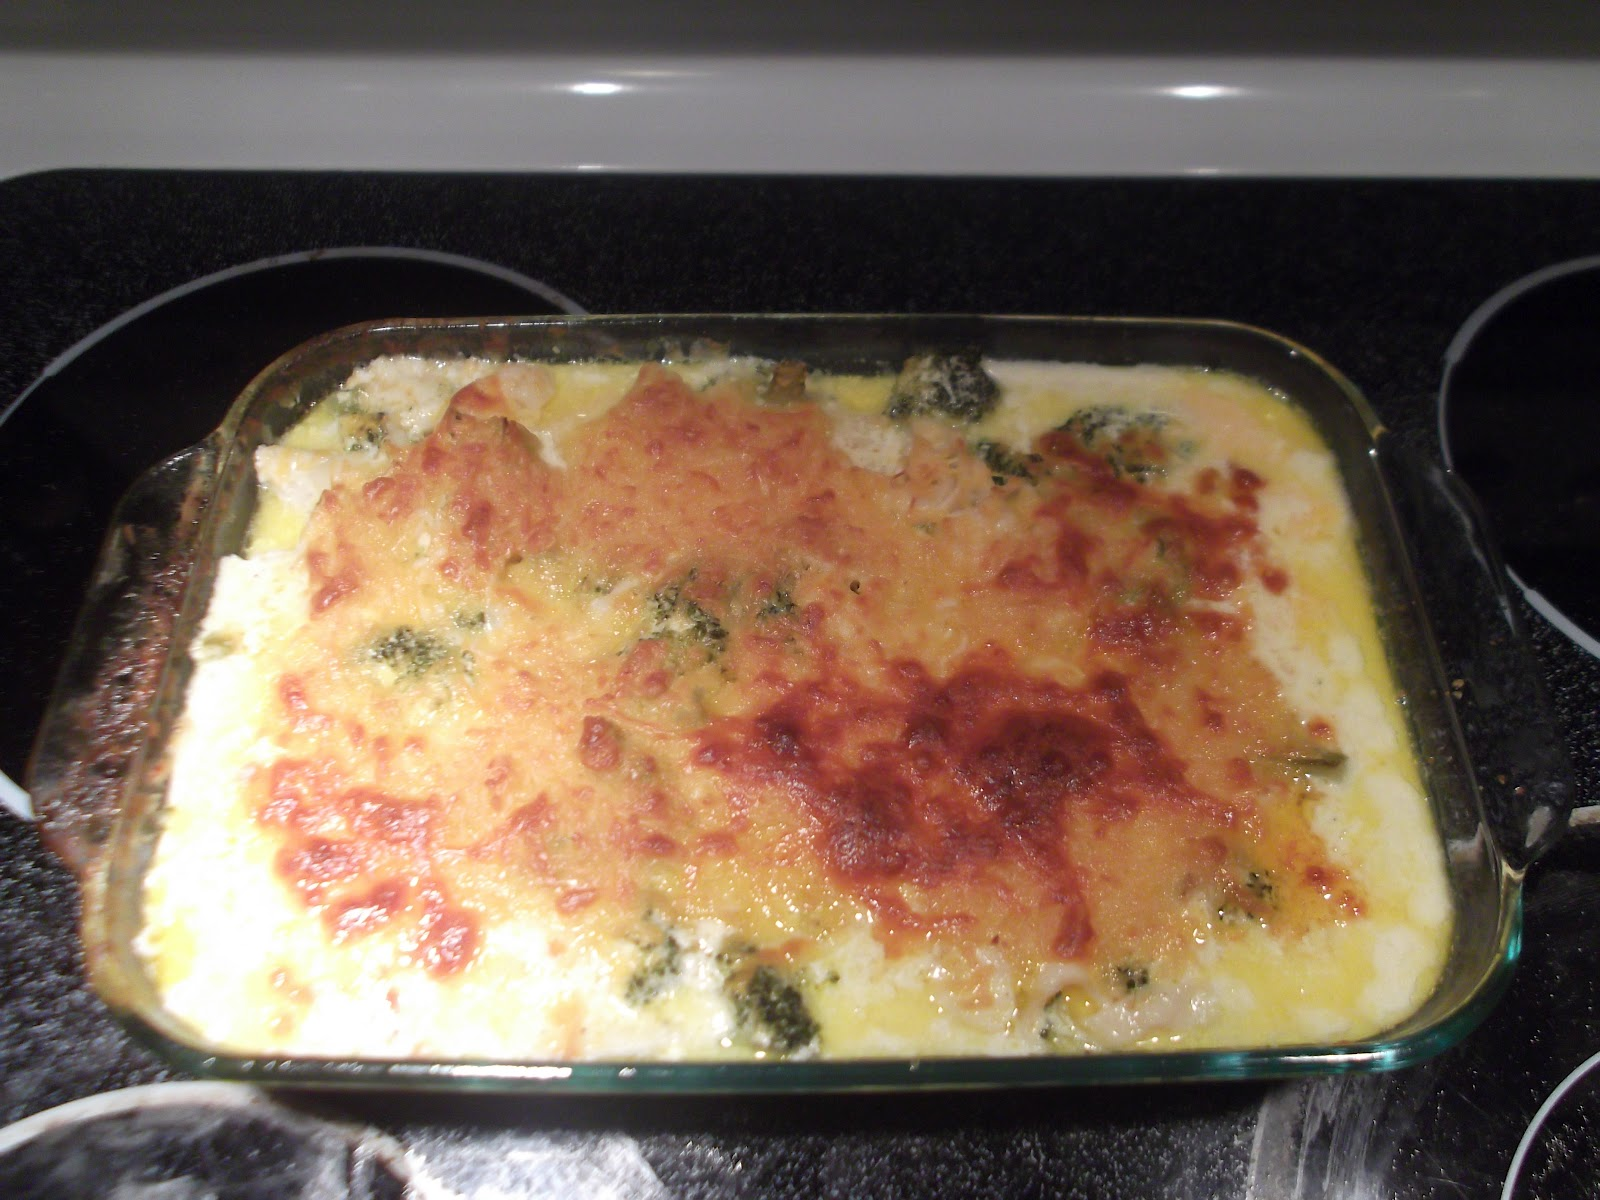 ... , love, and low carb living: Cheesy Chicken Broccoli Noodle Casserole